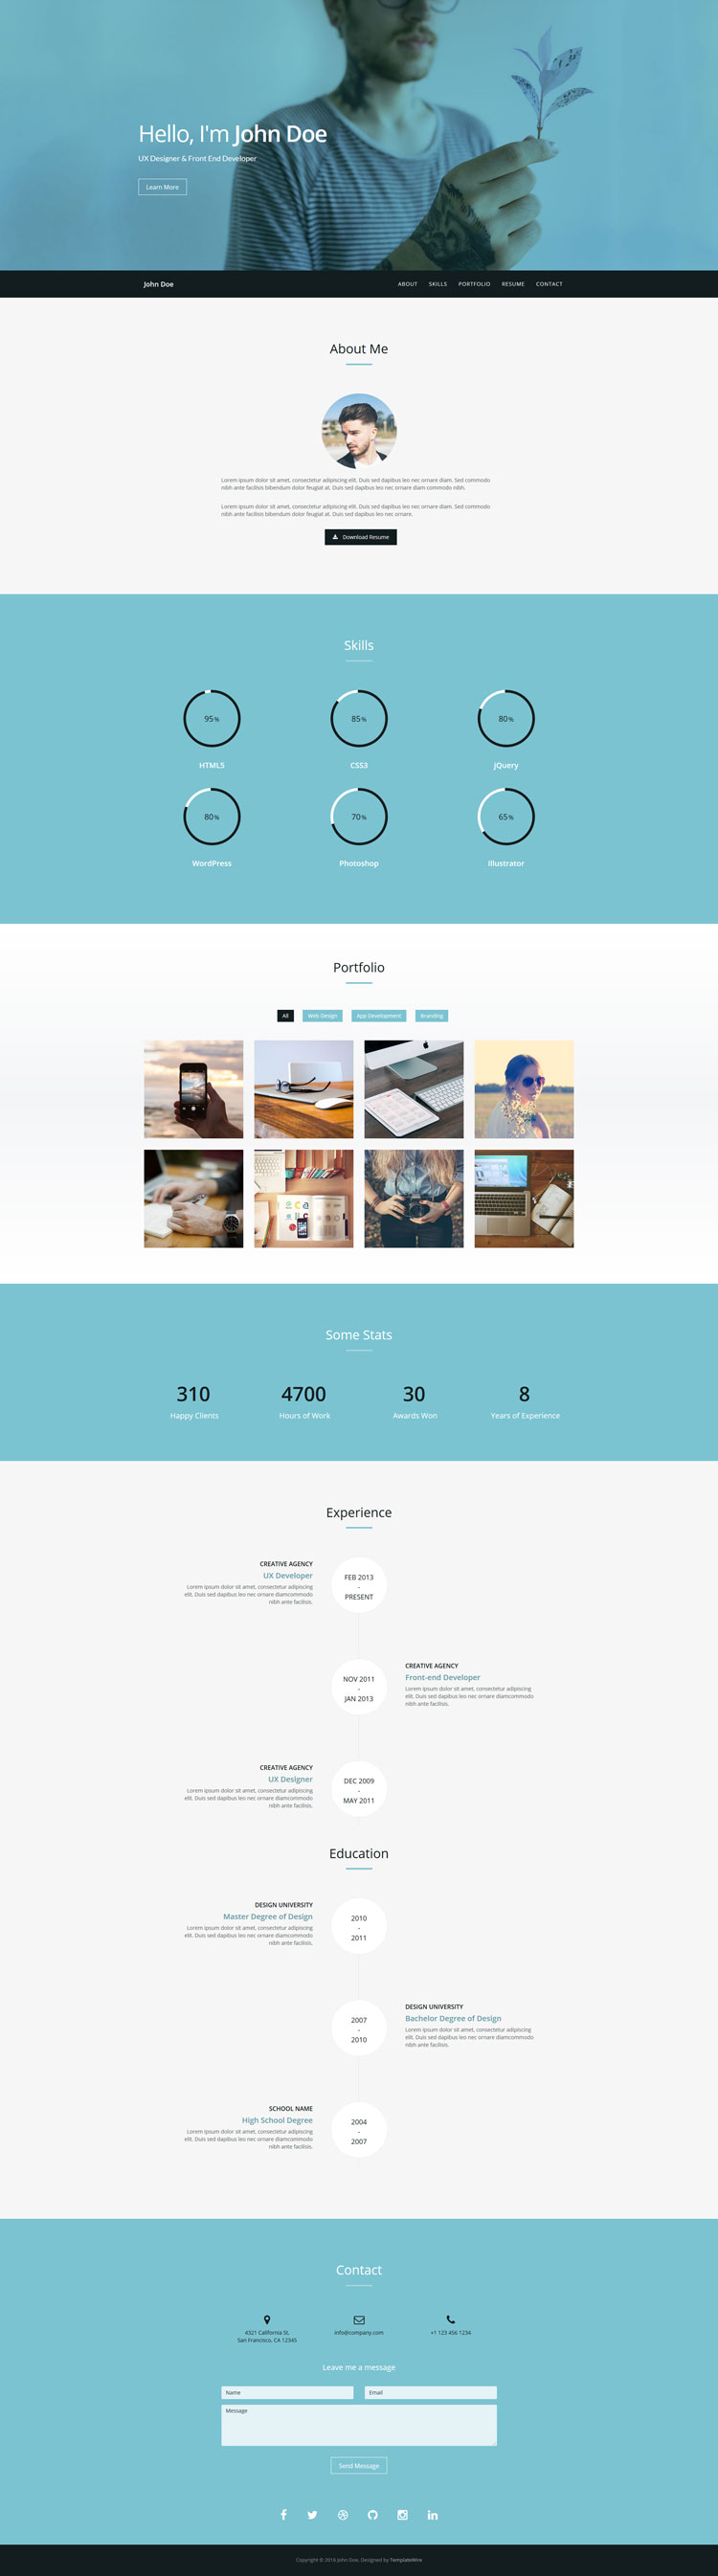 verum is a free one page html resume    cv template built with bootstrap  features include